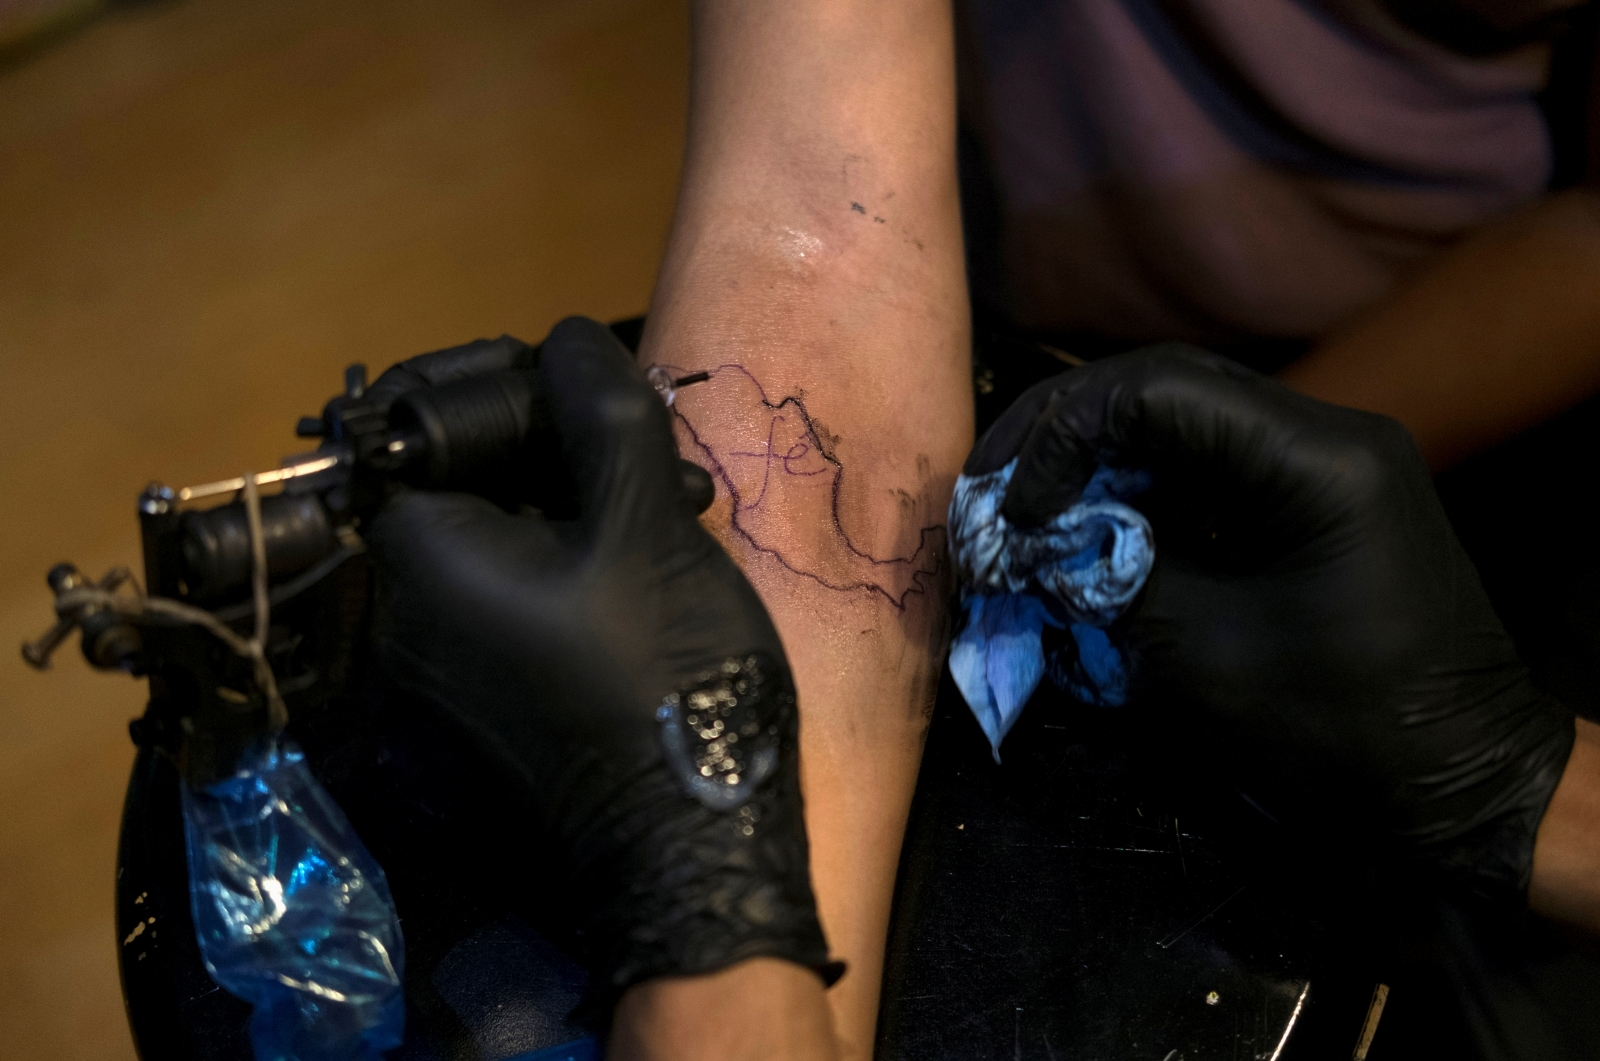 Biosensitive Tattoos Change Color When Blood Sugar Levels Increase